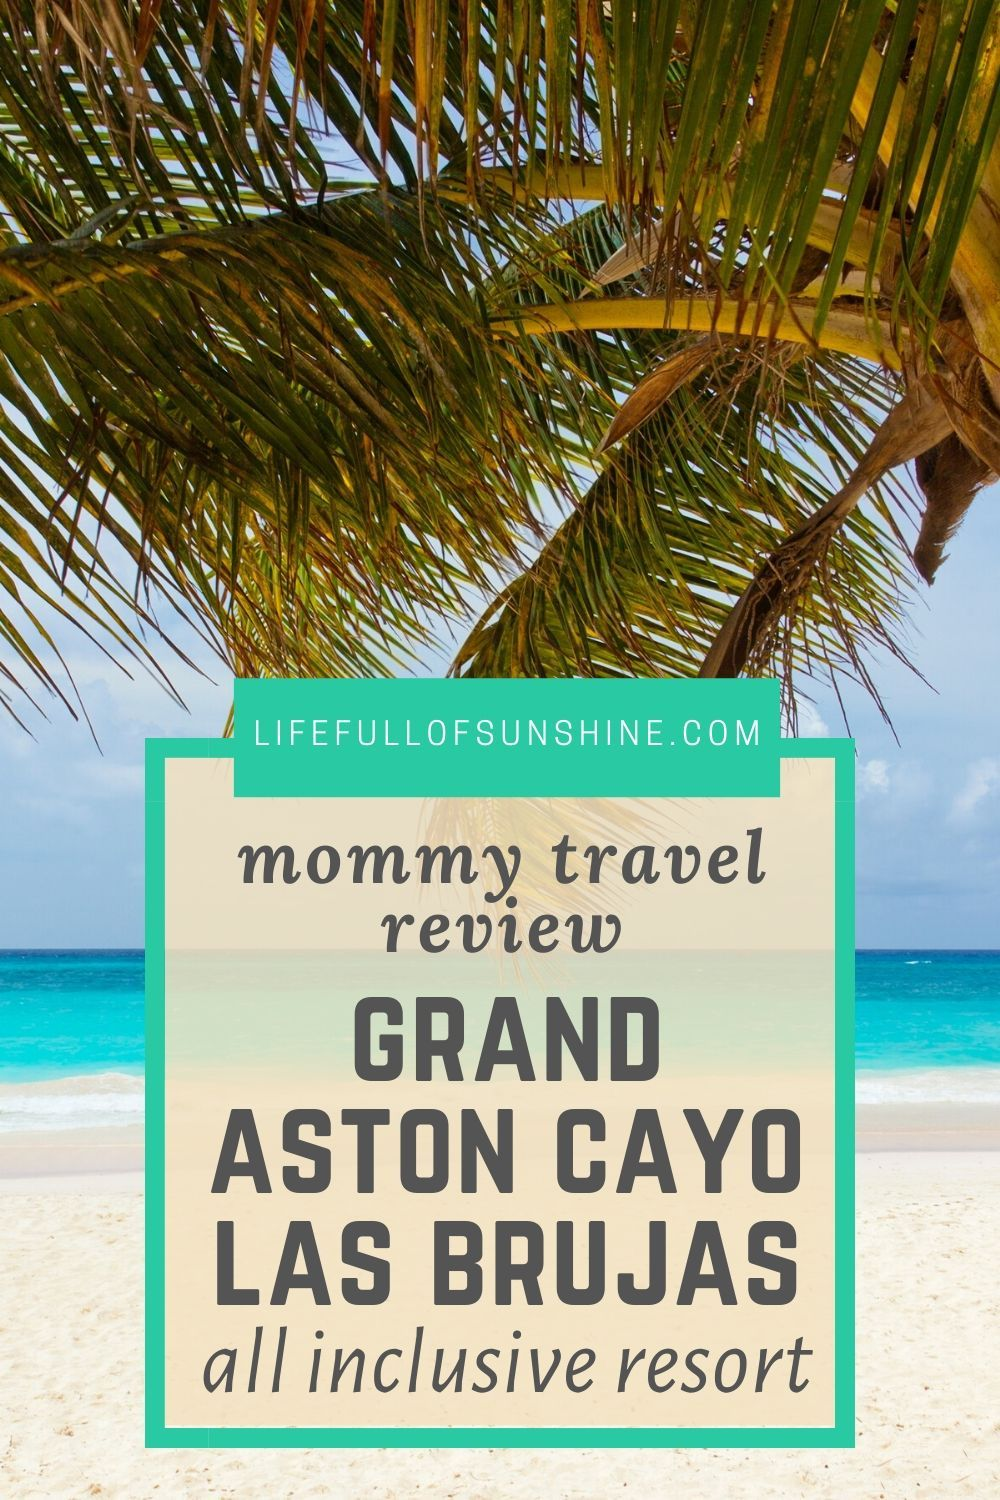 Detailed list of all you need to know about the Grand Aston Las Brujas when traveling with toddlers and young children.  Helpful resort review from the perspective of a mom of little ones with information on the kids club, the kids activities, the beach, the food and everything else.  Great for family travel.  #familytravel #travelingwithkida #cubatravel #cubawithkids #allinclusivewithkids